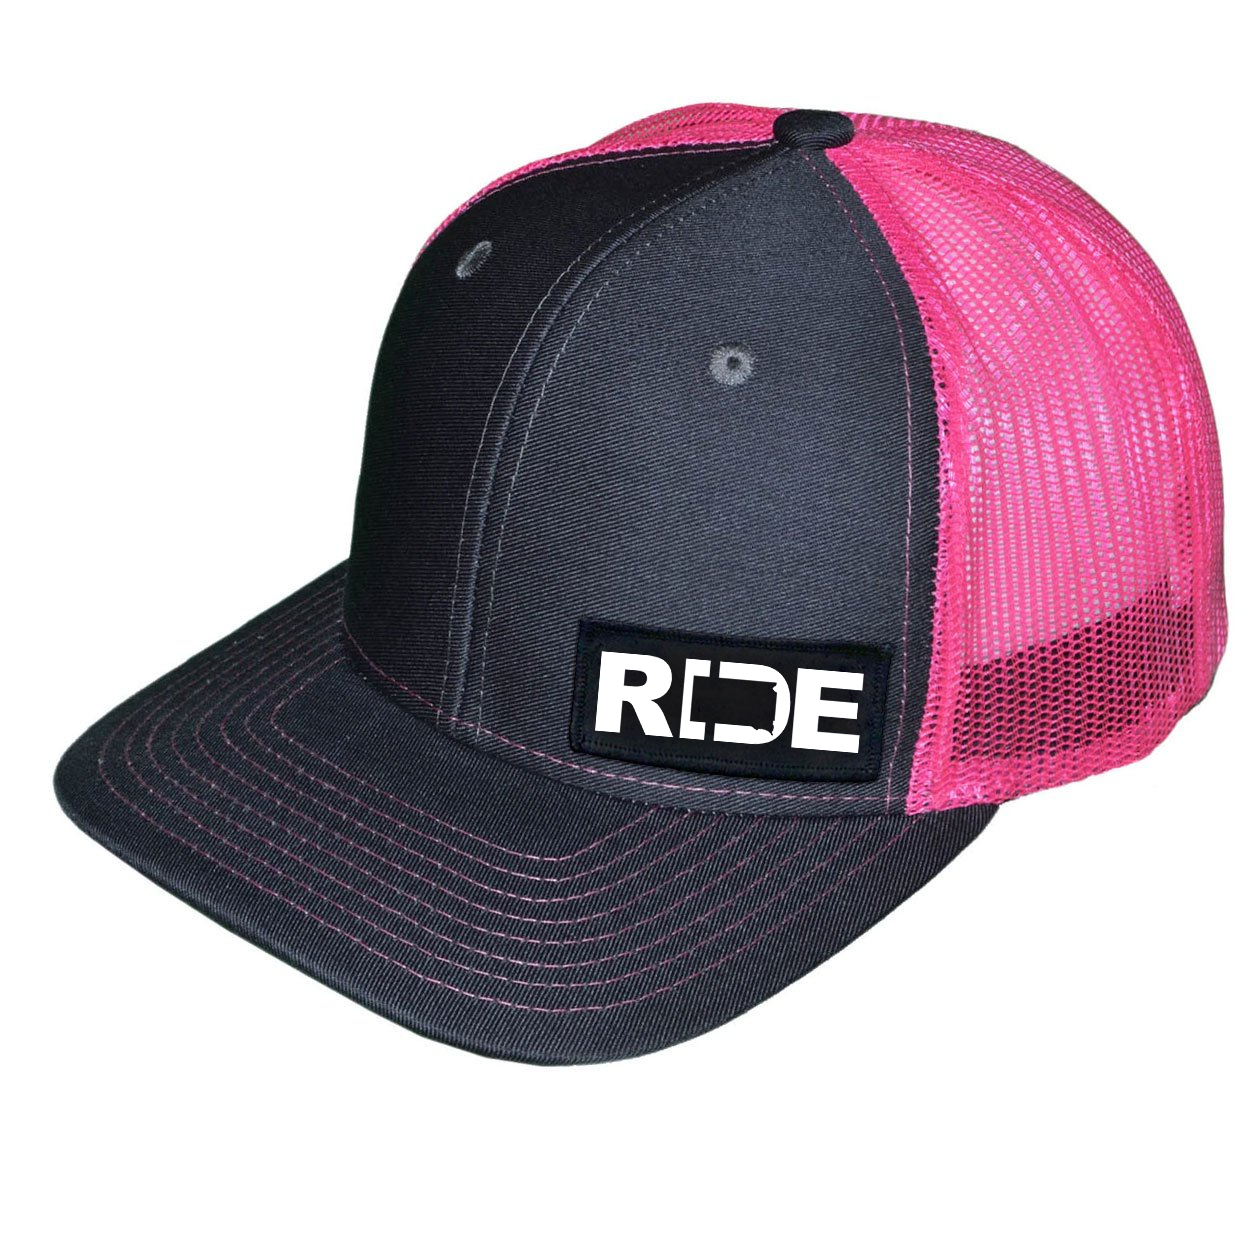 Ride South Dakota Night Out Woven Patch Snapback Trucker Hat Dark Gray/Neon Pink (White Logo)